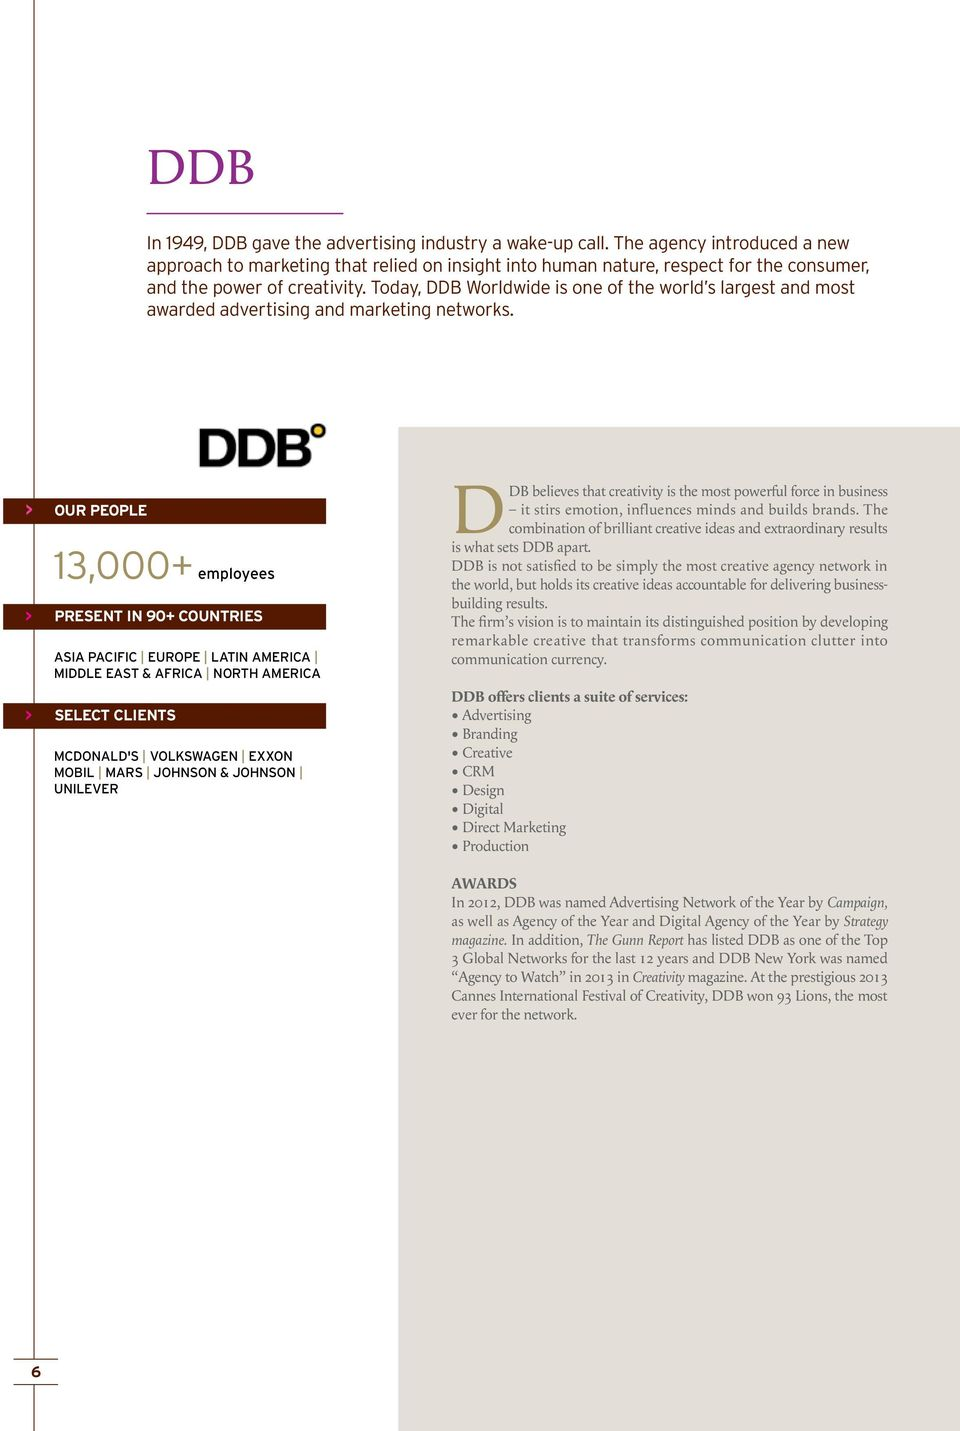 Today, DDB Worldwide is one of the world s largest and most awarded advertising and marketing networks.